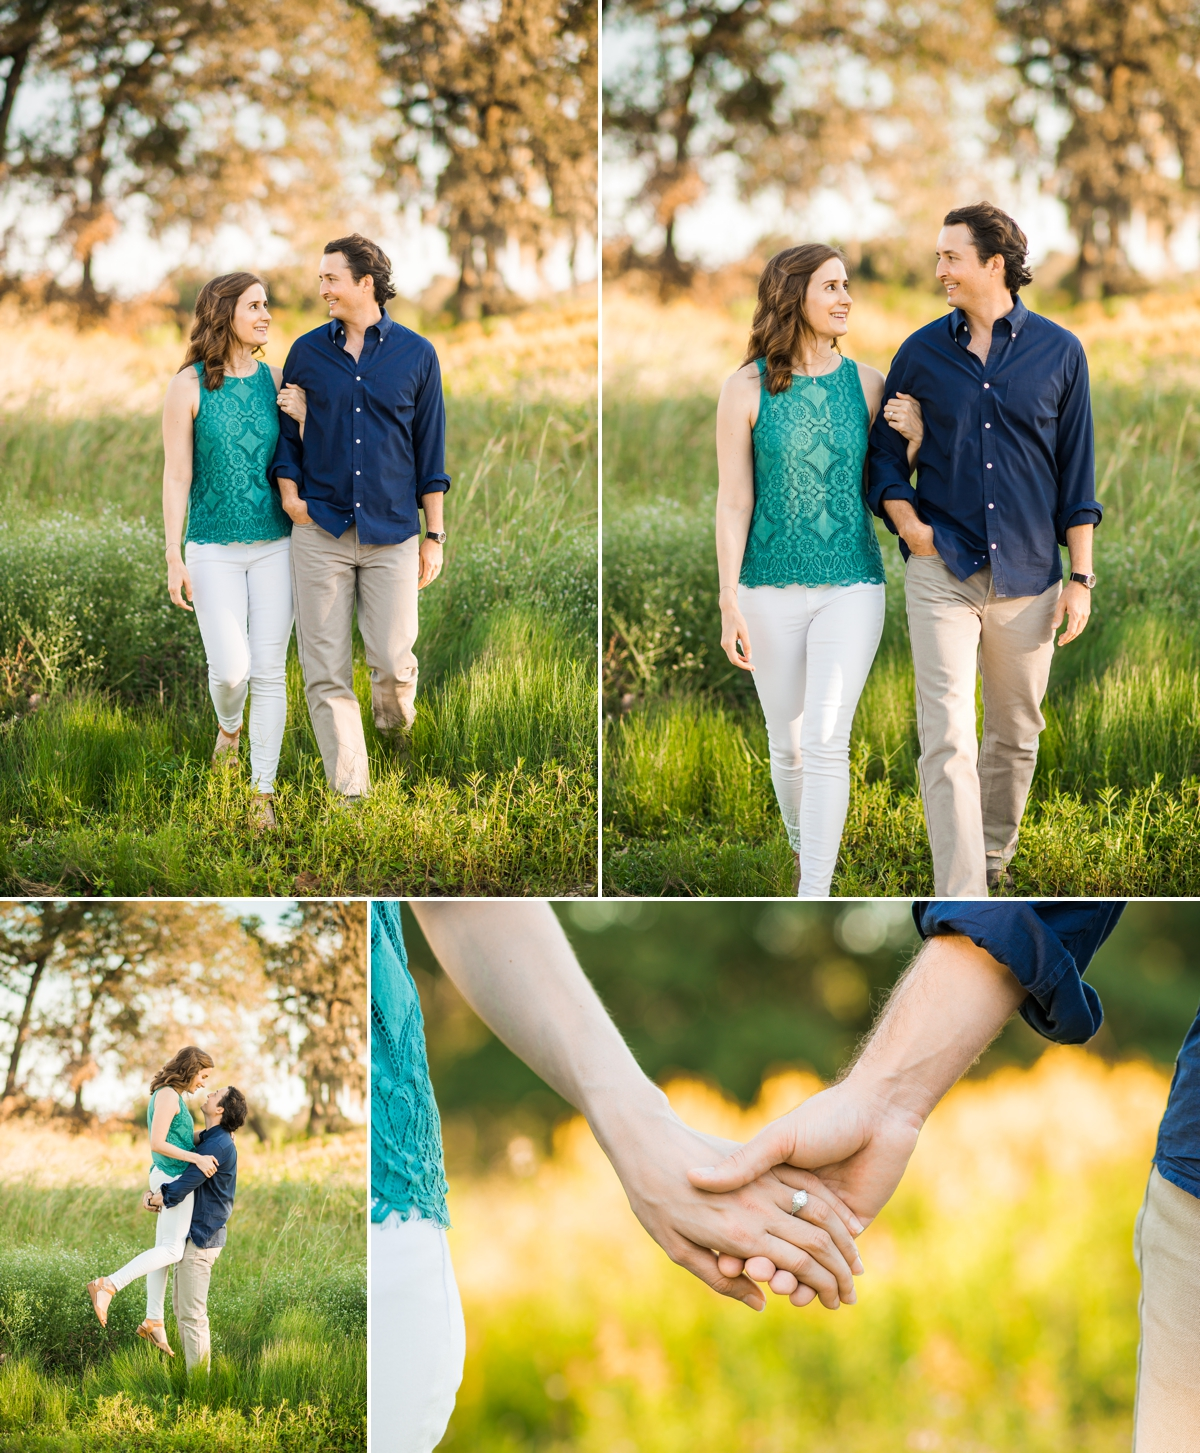 Sunset portraits in the field at Houston Botanic Garden Engagement Session